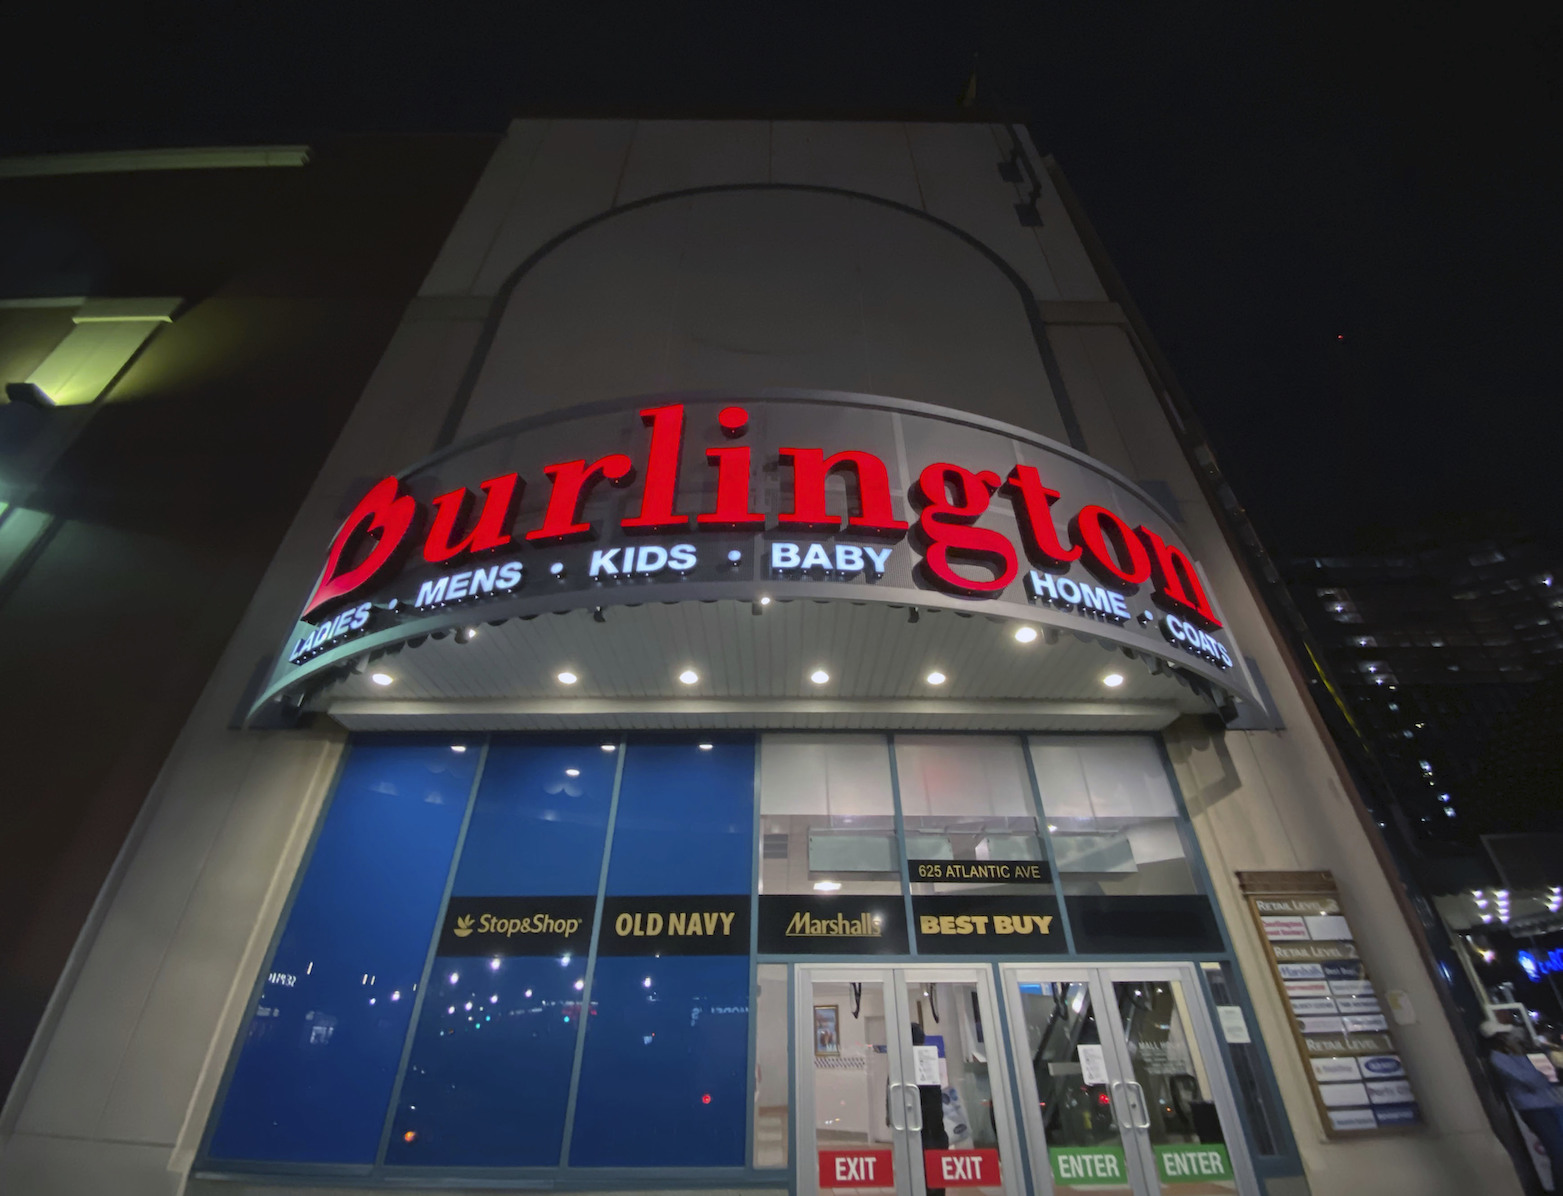 Burlington saw total revenue skyrocket 118 percent up to $2.22 billion, well ahead of the $1.01 billion it took in during the 2020 second quarter, and up 33.3 percent from 2019 numbers.